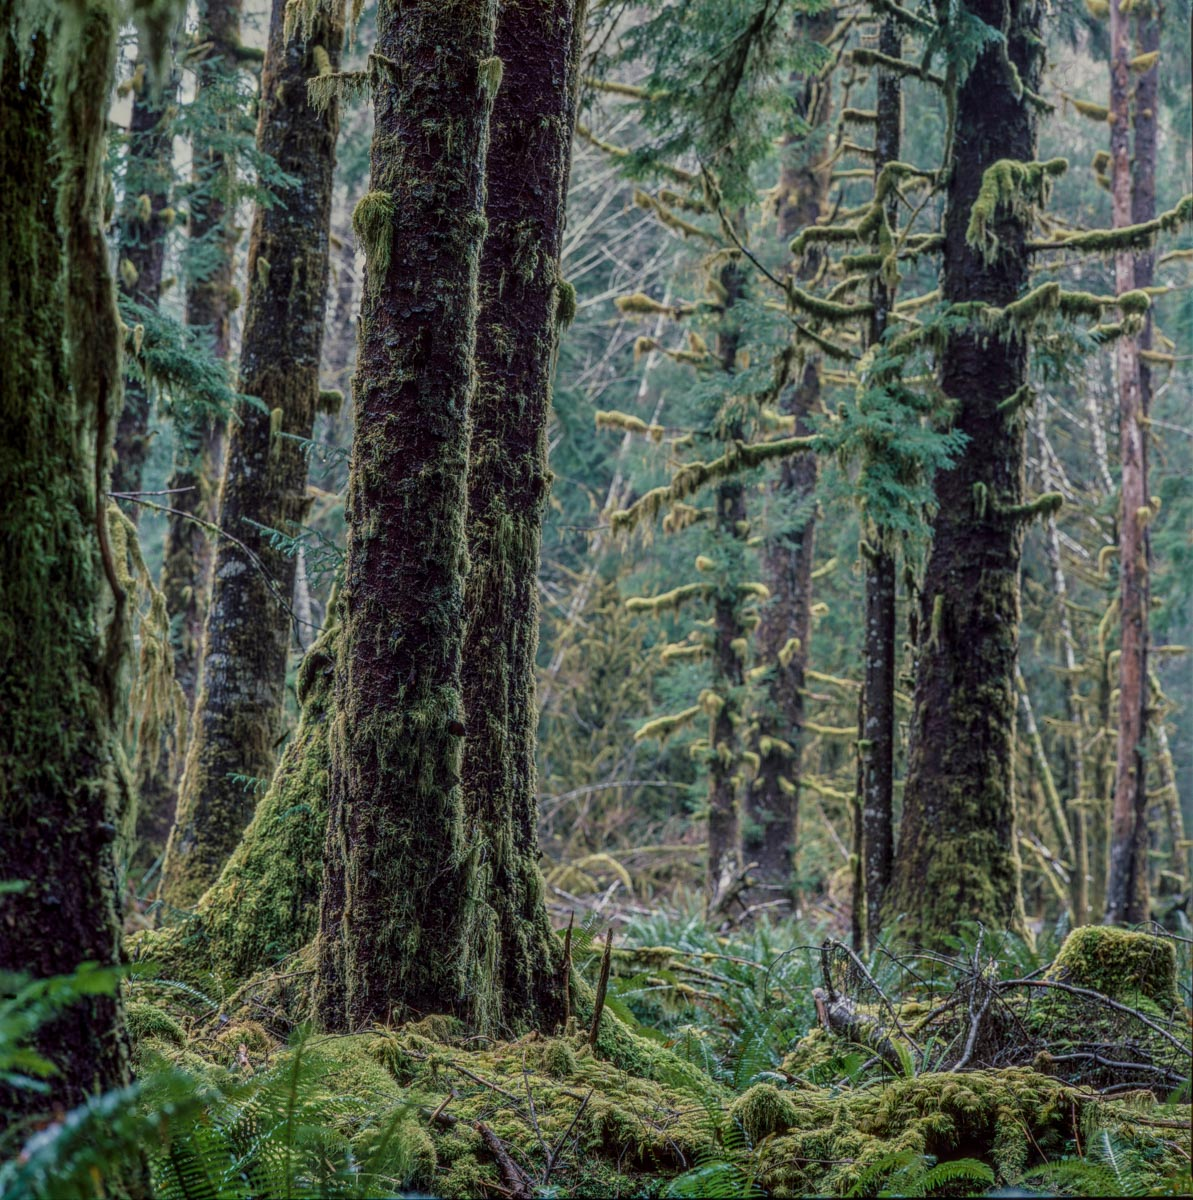 Verdent trees at Crescent Lake in Washington